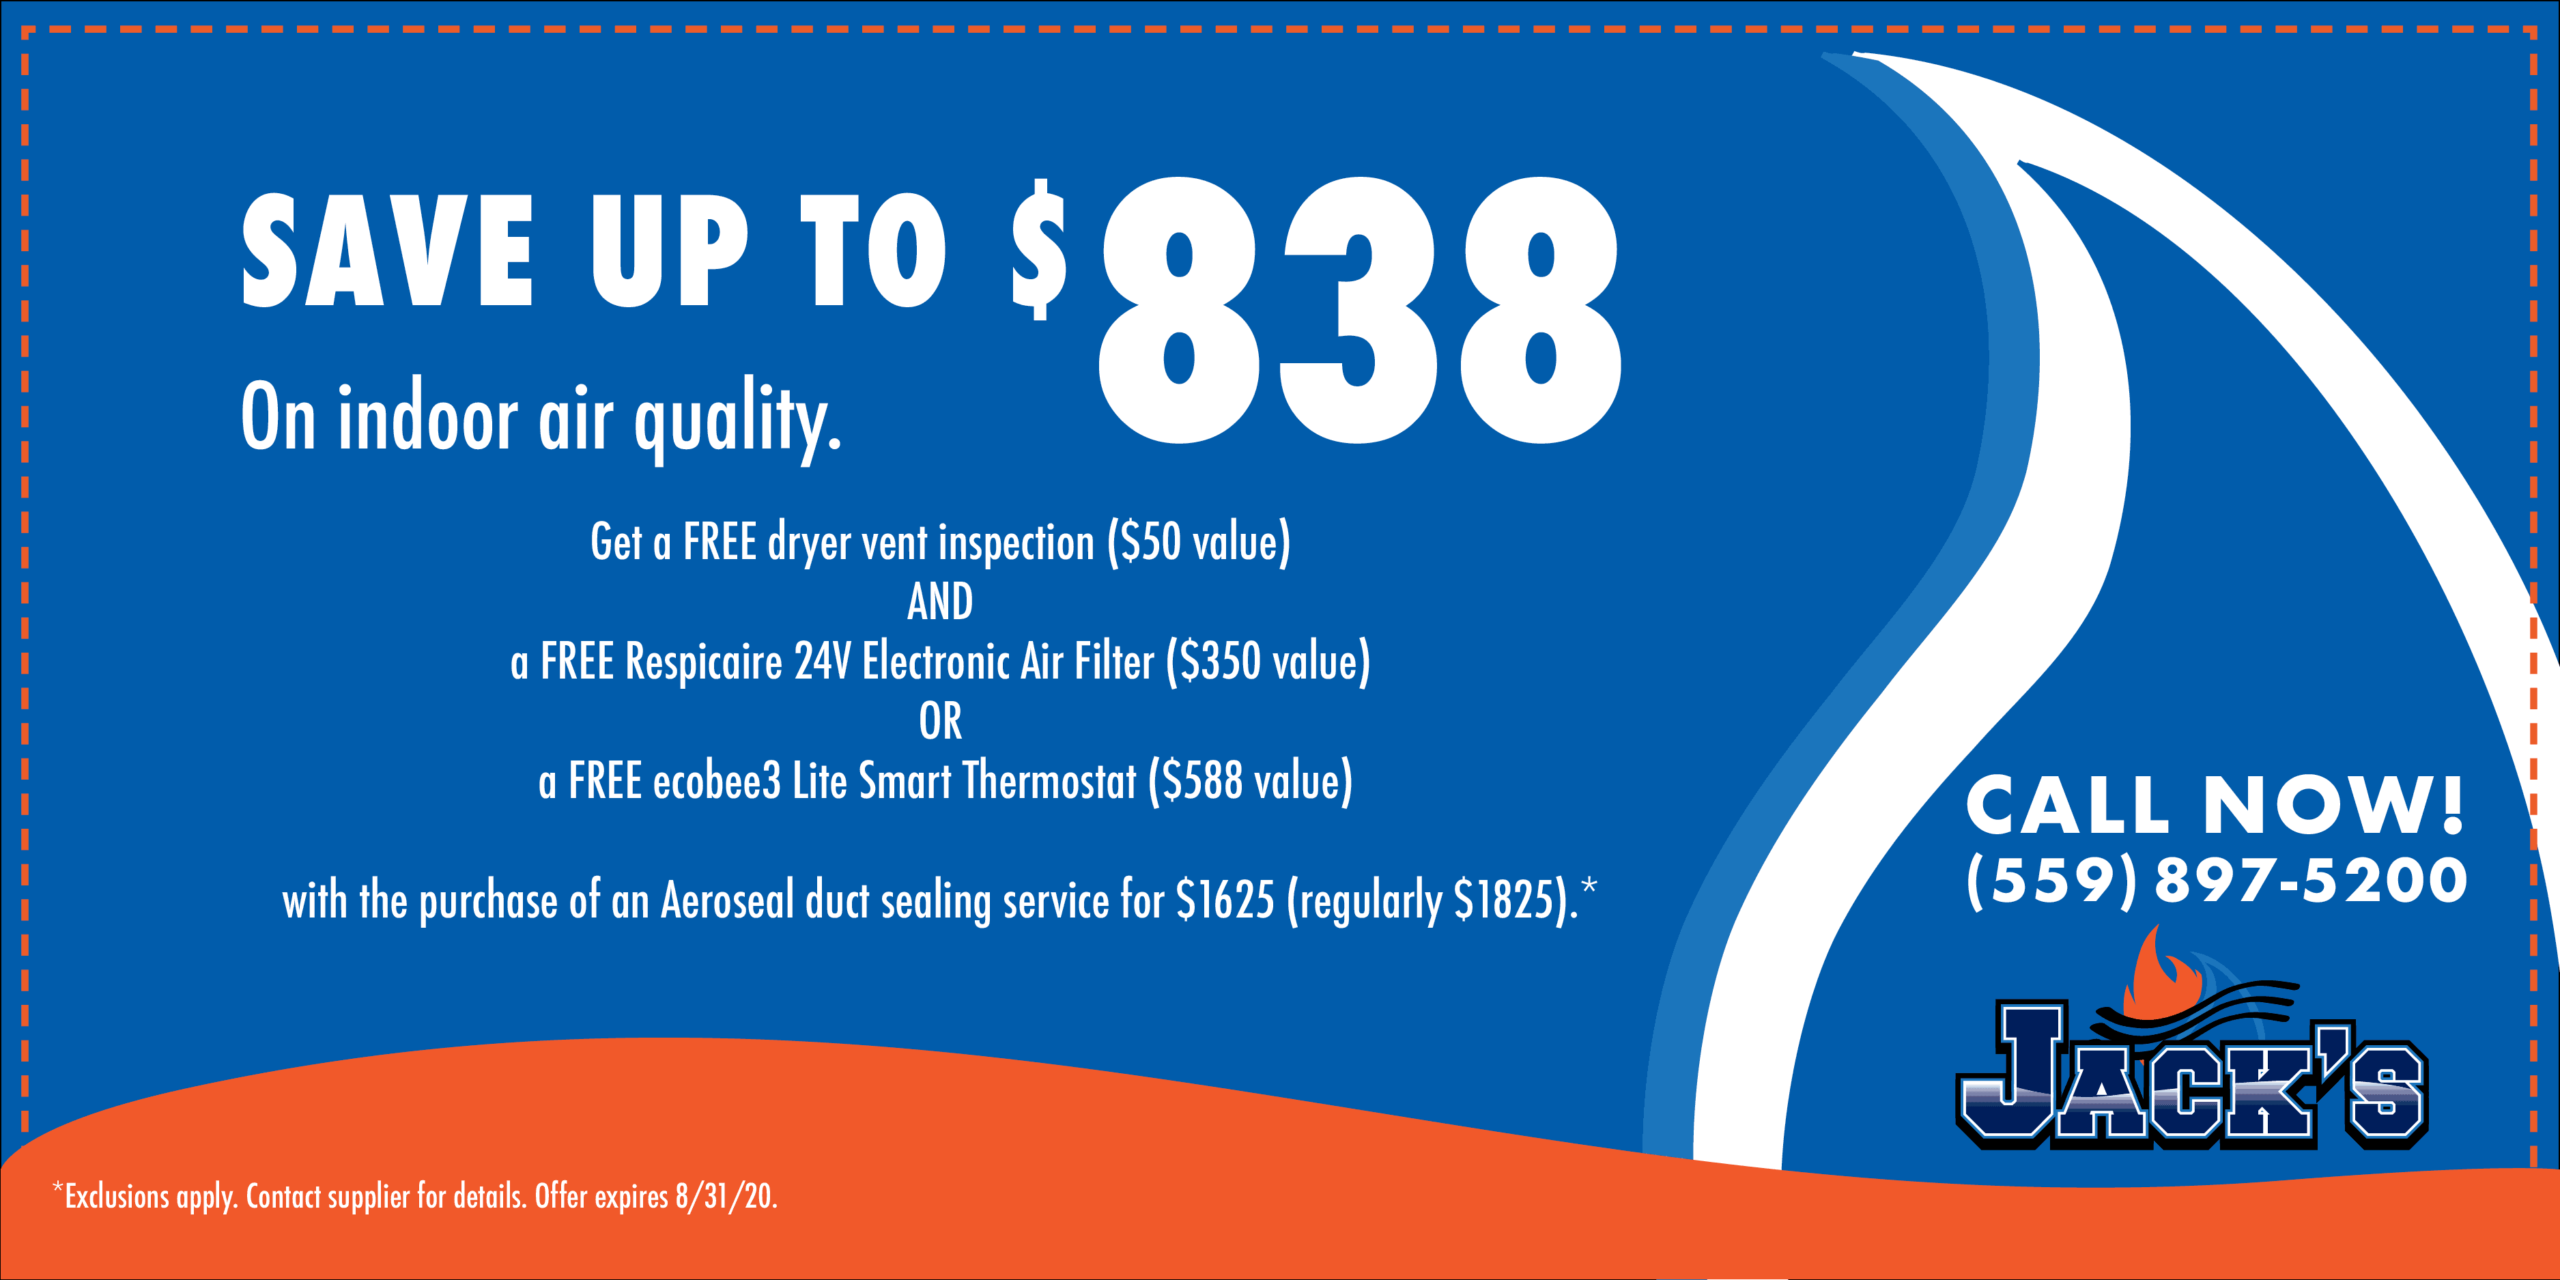 Save Up To $838 On Indoor Air Quality